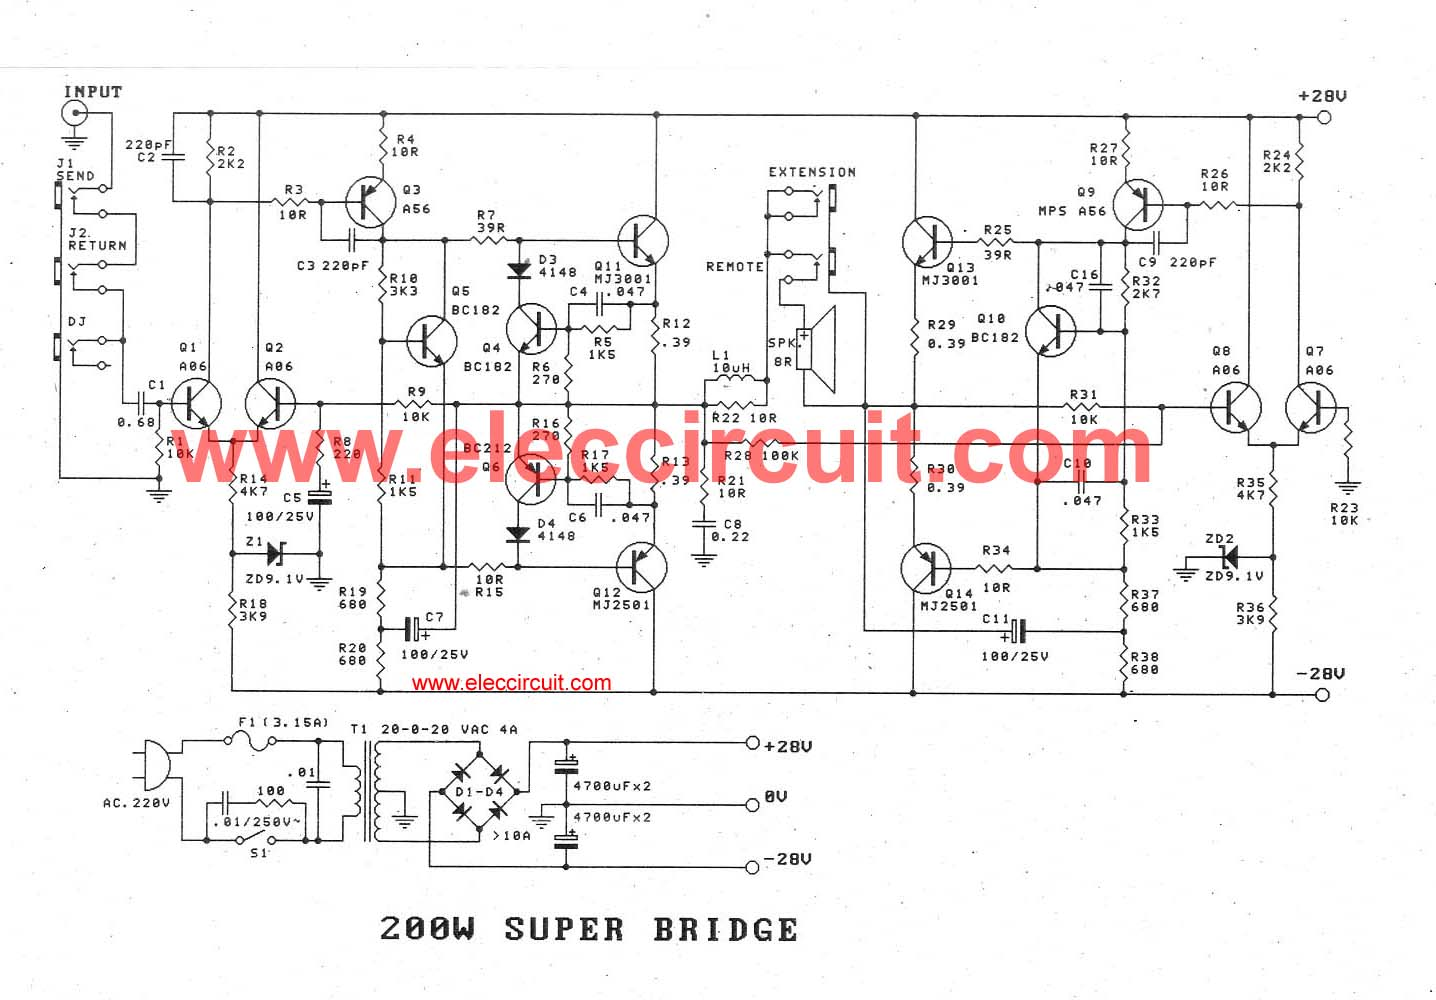 hight resolution of 200w guitar amplifier circuit diagram with pcb layout circuit diagram of 200w mosfet amplifier layout pcb design amplifier